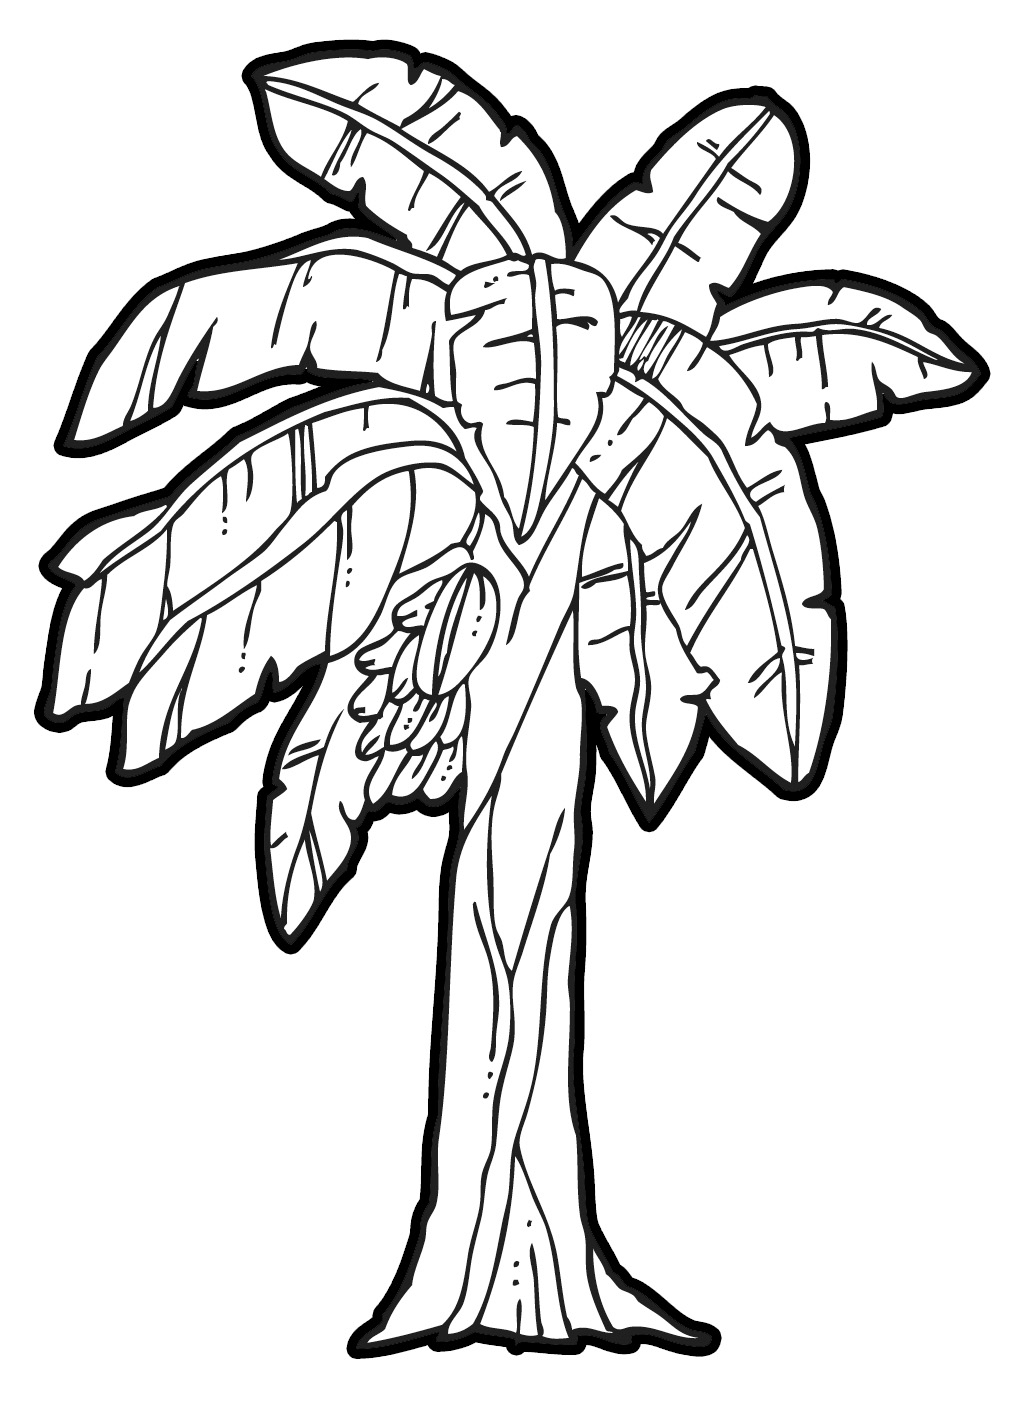 1029x1405 Pencil Drawing Of A Banana Plant How To Draw Banana Tree Step By